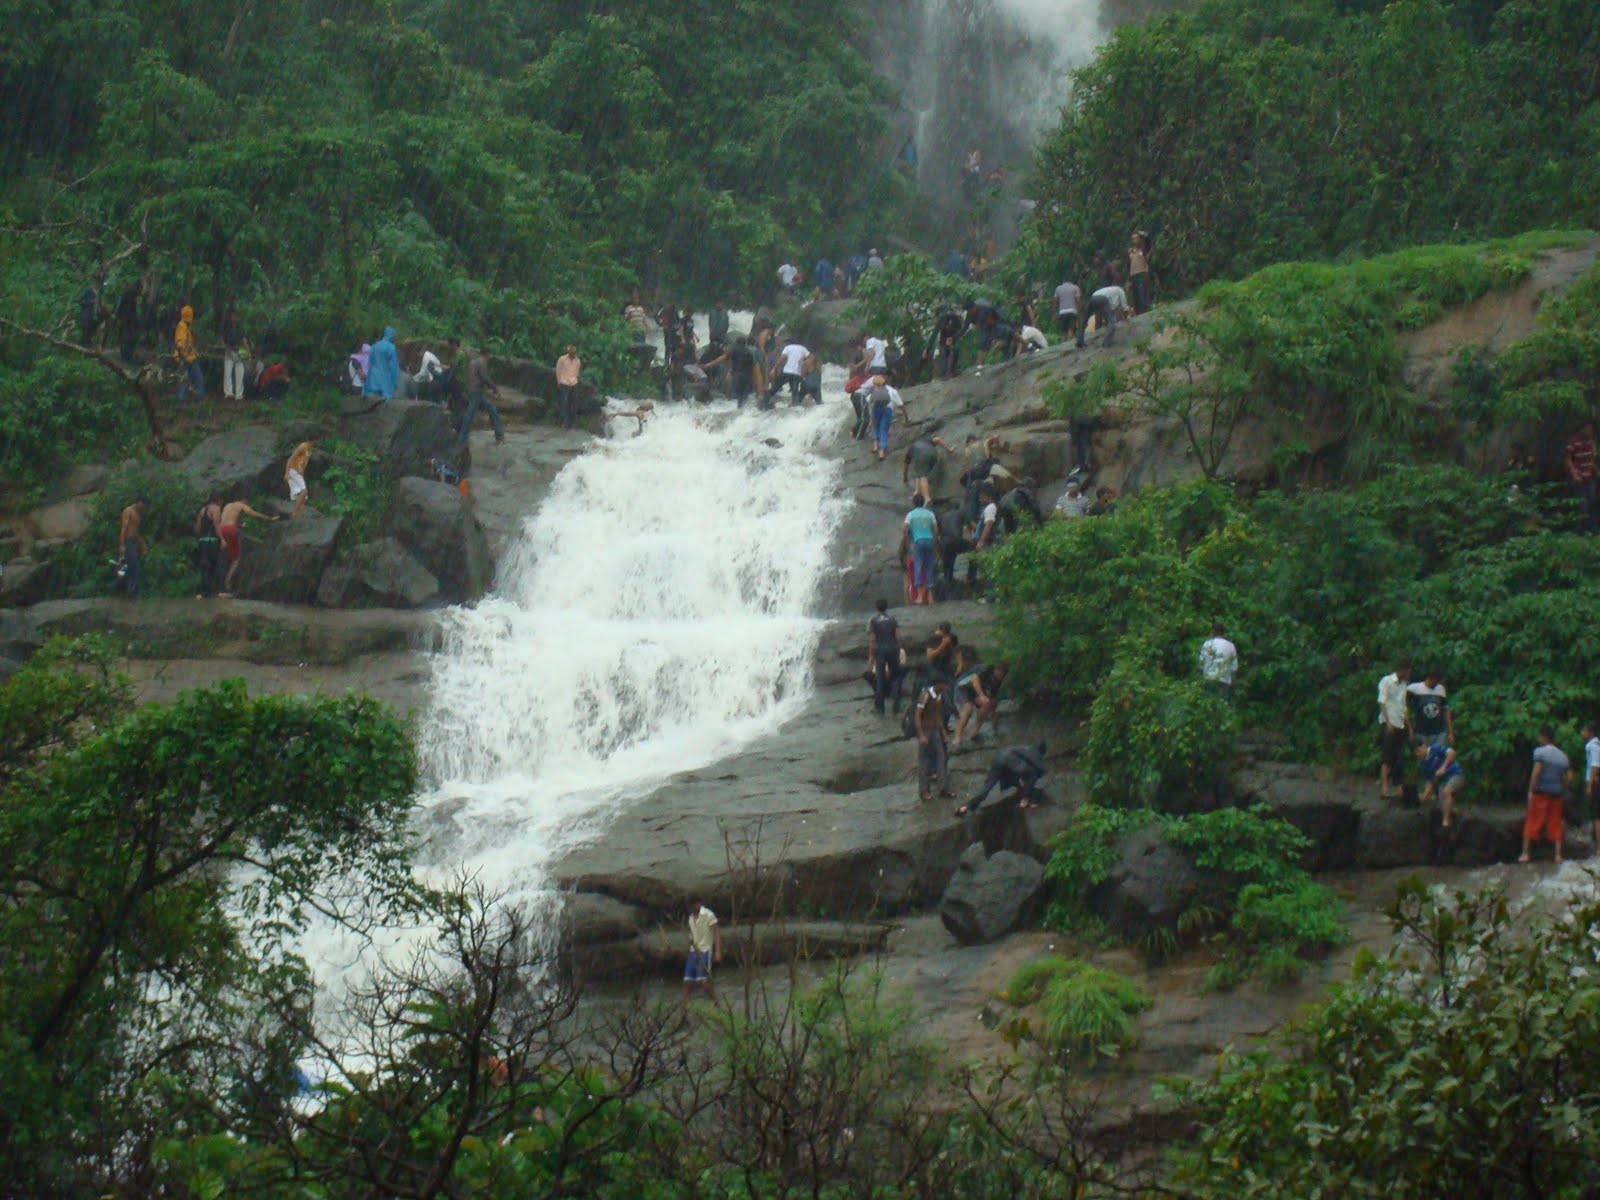 Festival Celebrations Wallpapers Of Most Beautiful Waterfalls Of Lonavala